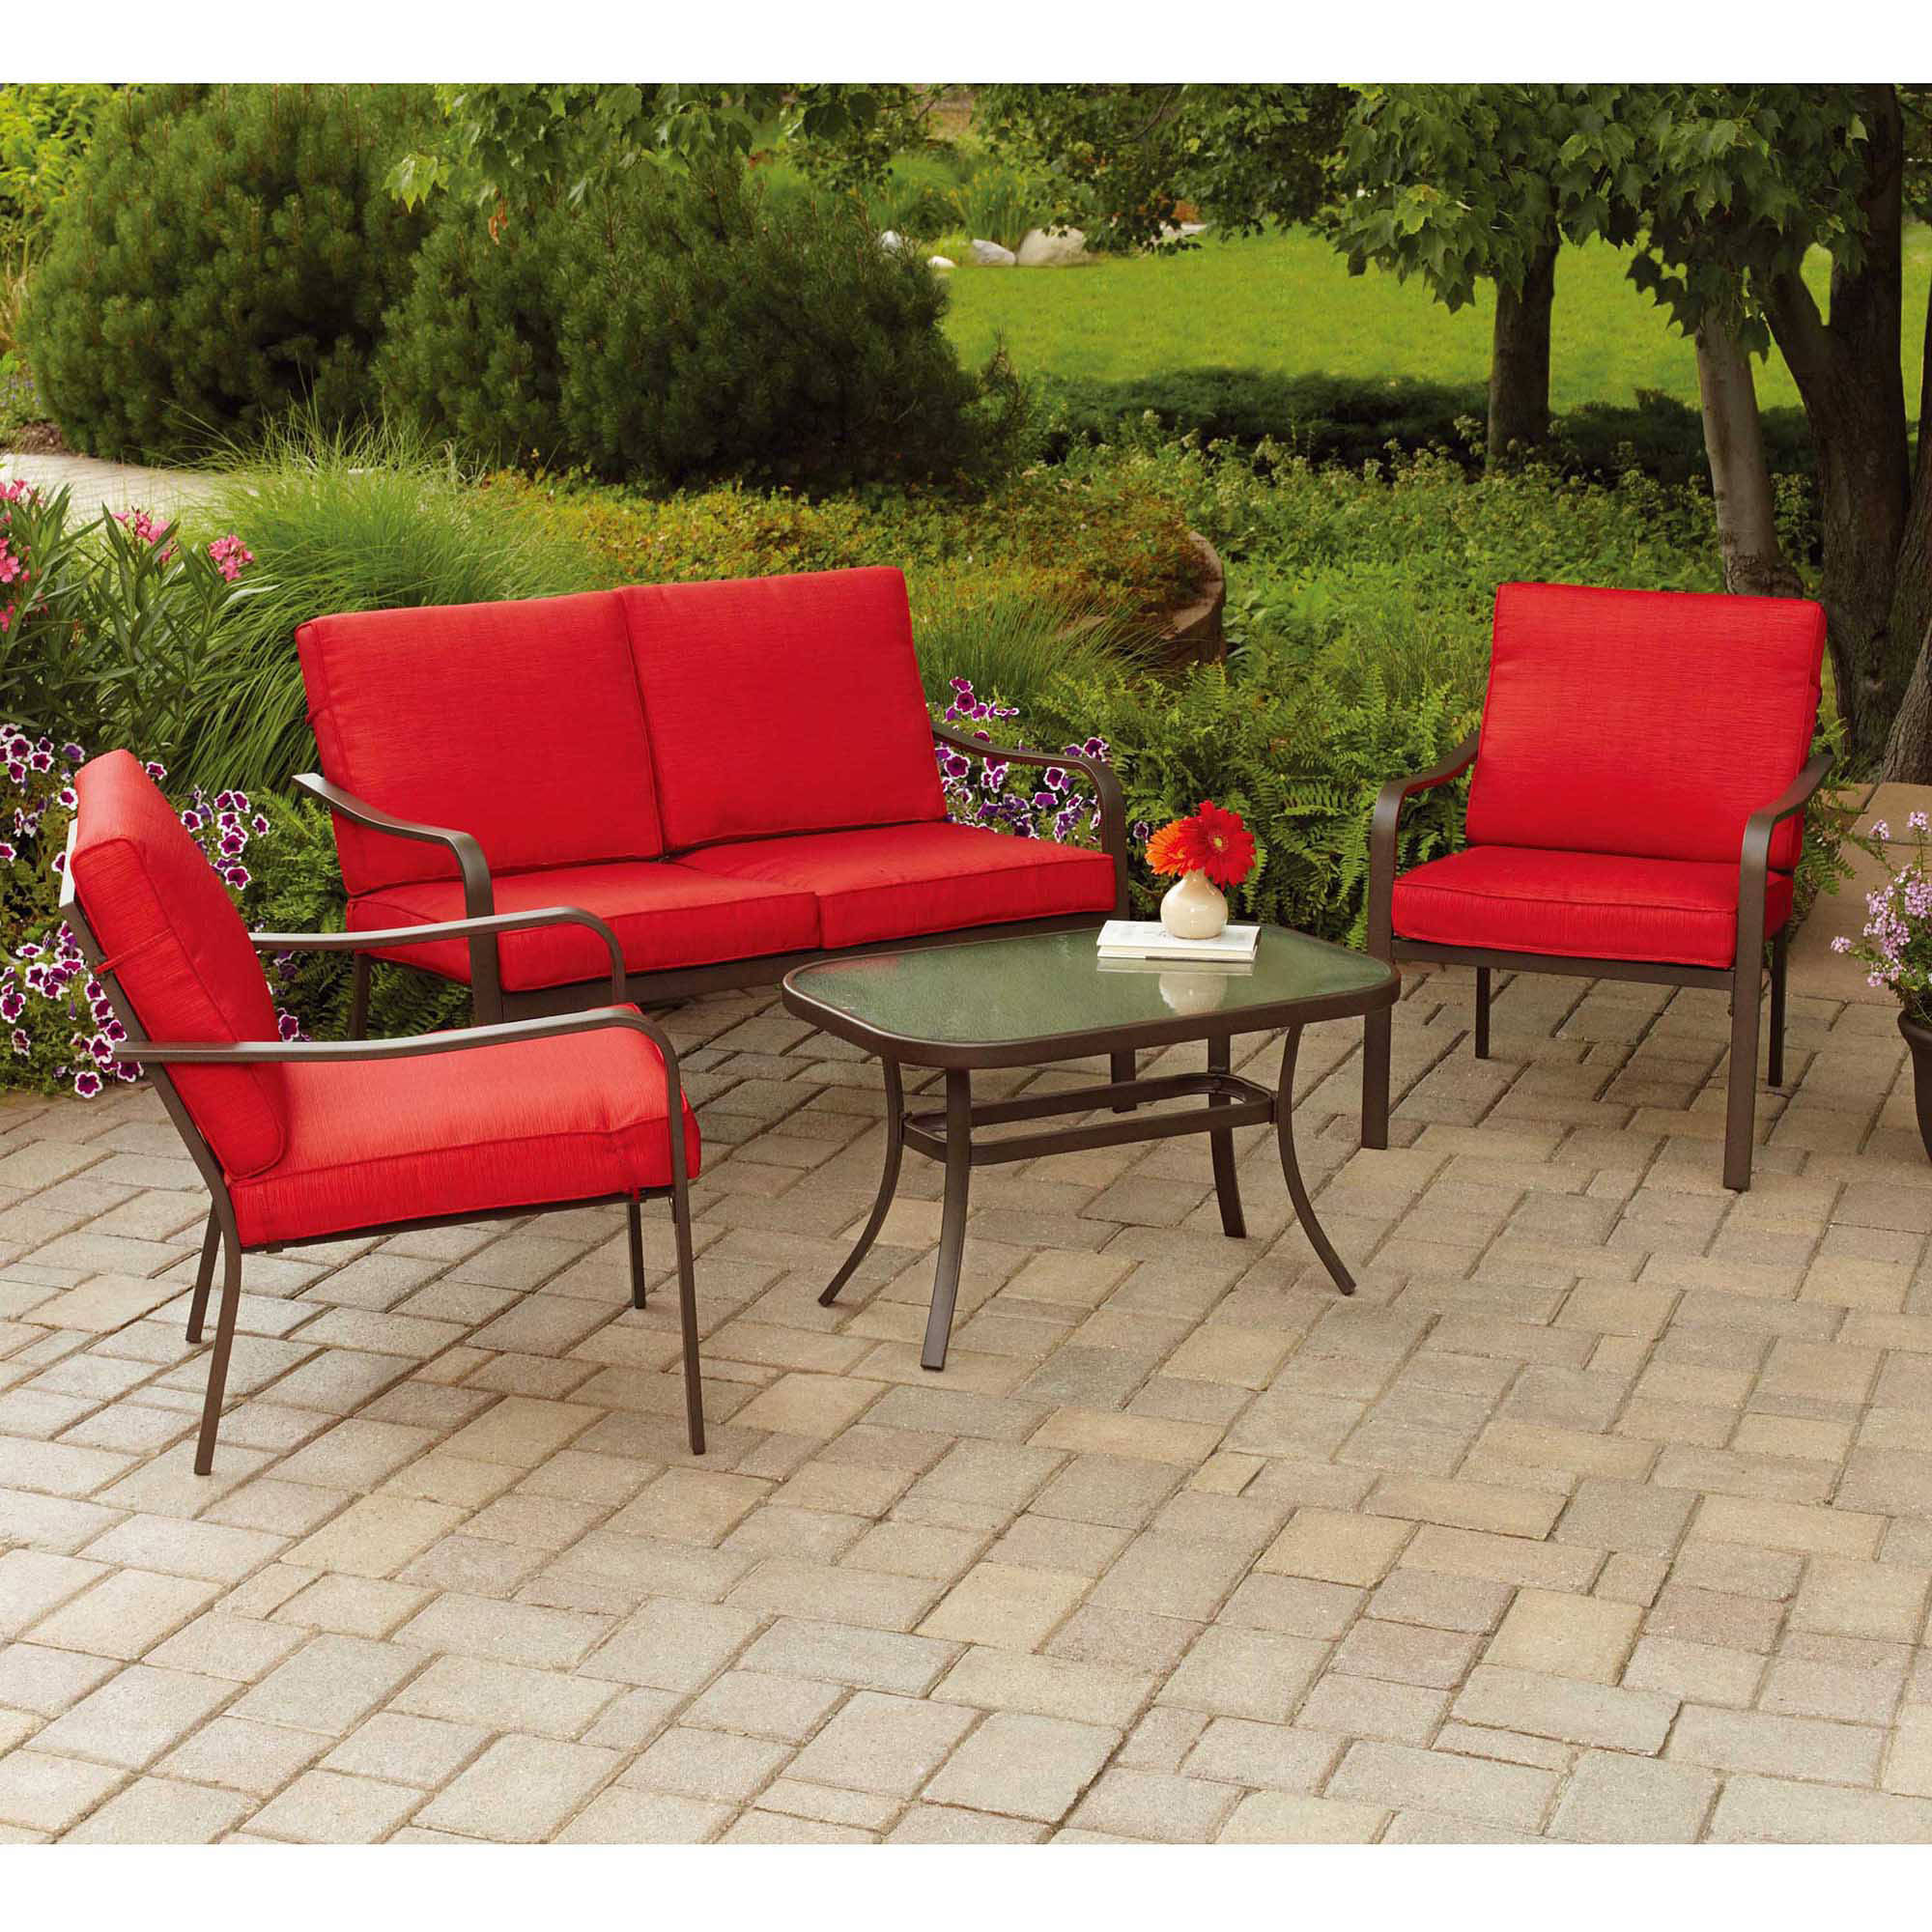 Red Patio Chairs Details About Cushioned 4 Piece Patio Conversation Set Red Tables And Chair Outdoor Dining